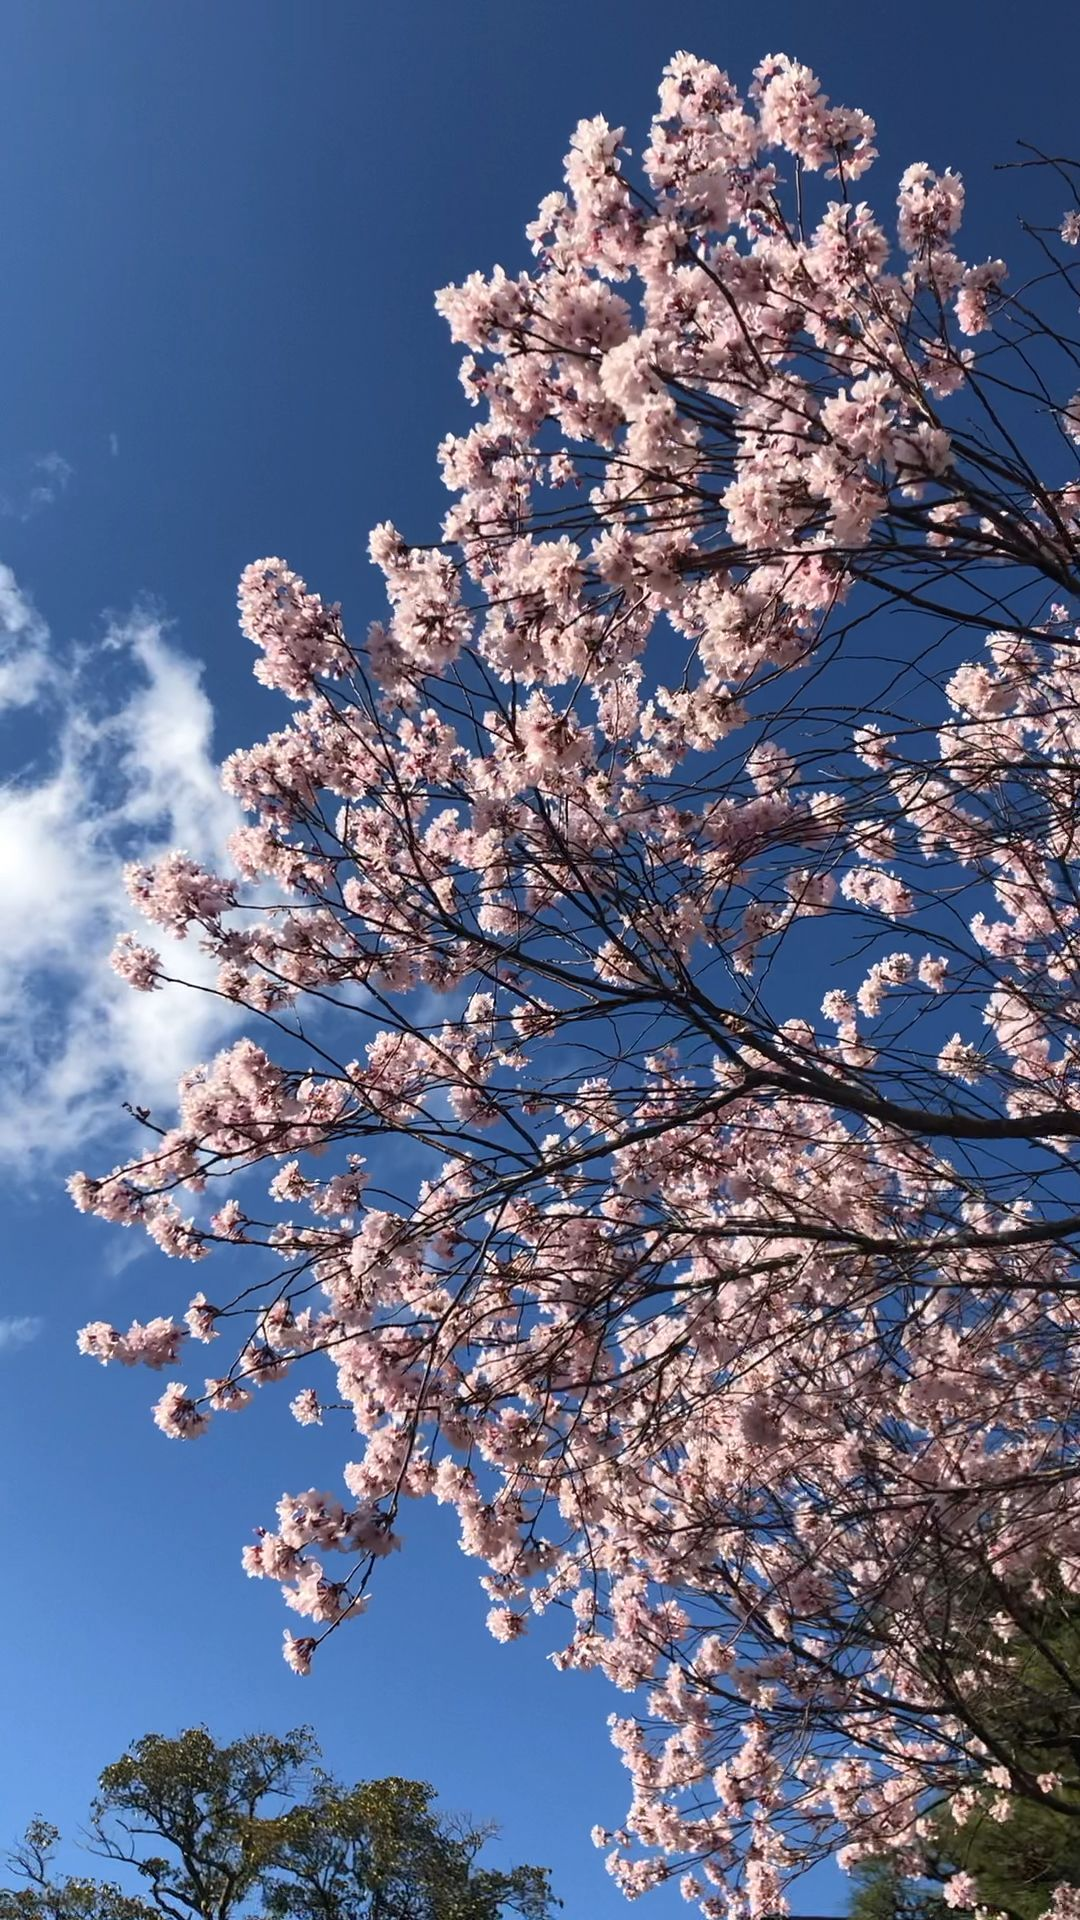 Genial Absolument Gratuit Paysage Jeux Video Suggestions A Sakura Tree In Kyoto During Sp Japan Sakura Cherry Blossom Wallpaper Japanese Landscape